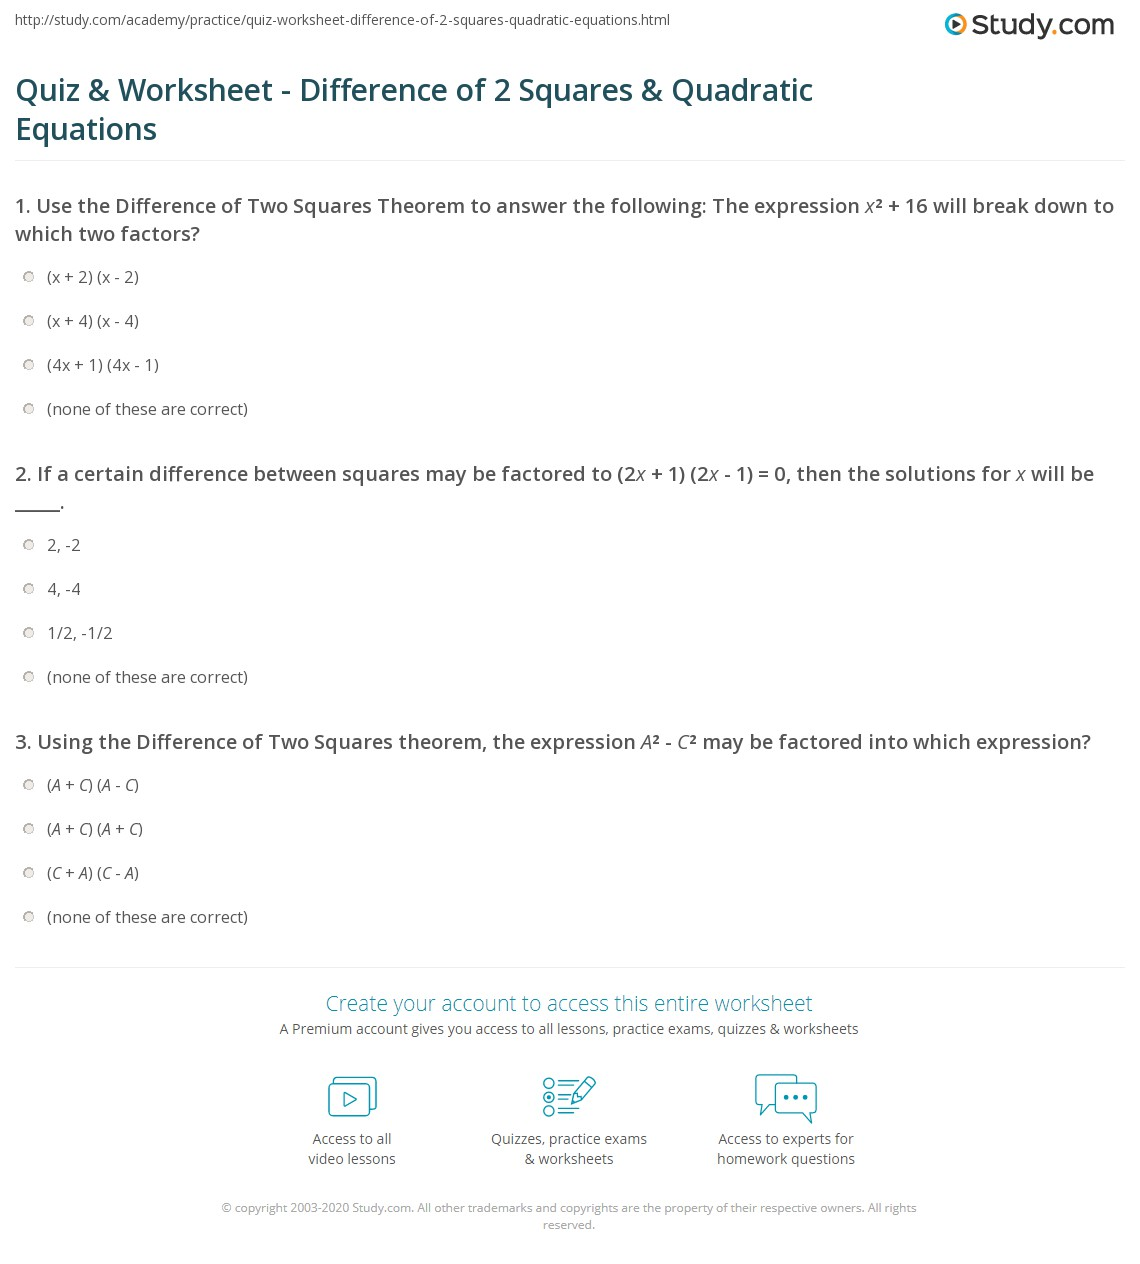 Quiz & Worksheet - Difference of 2 Squares & Quadratic Equations ...